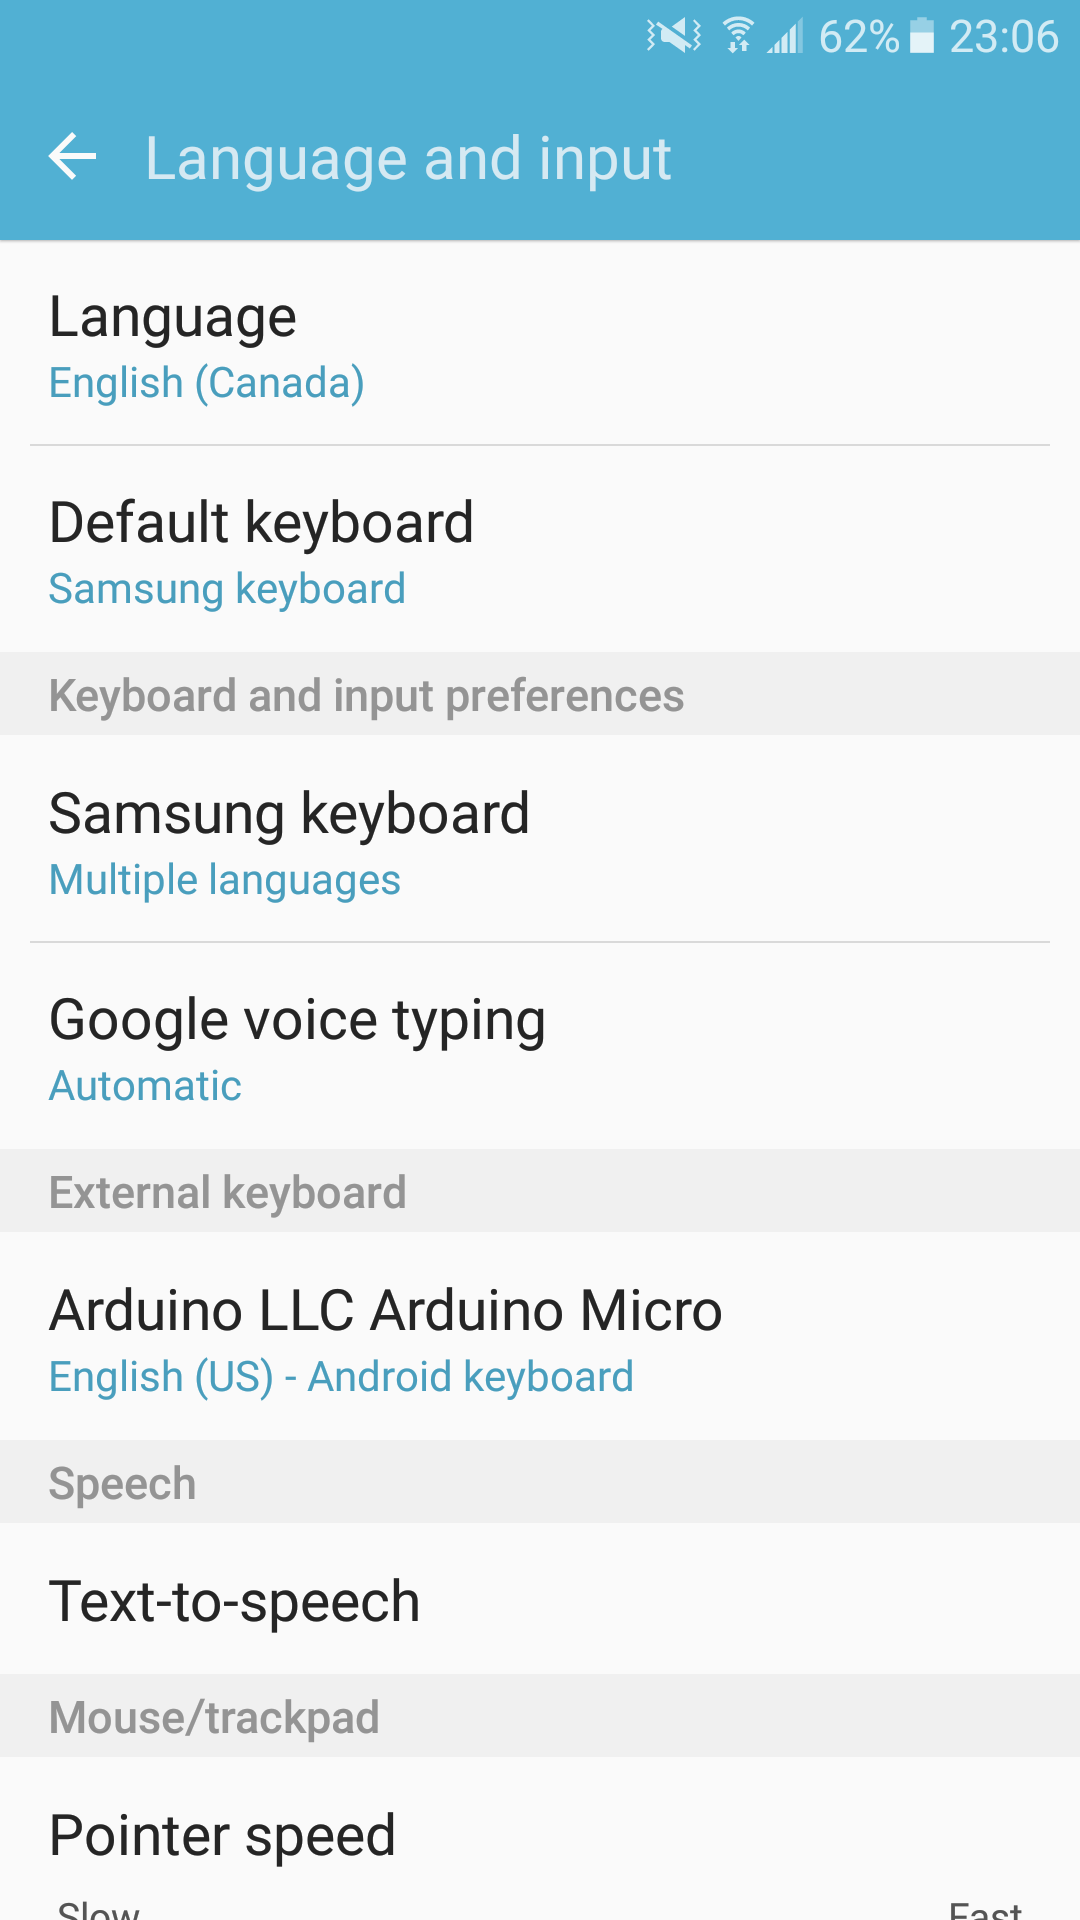 lipsync io my phone for good reason was not opening the on screen keyboard because it views an external keyboard connected to it so the text